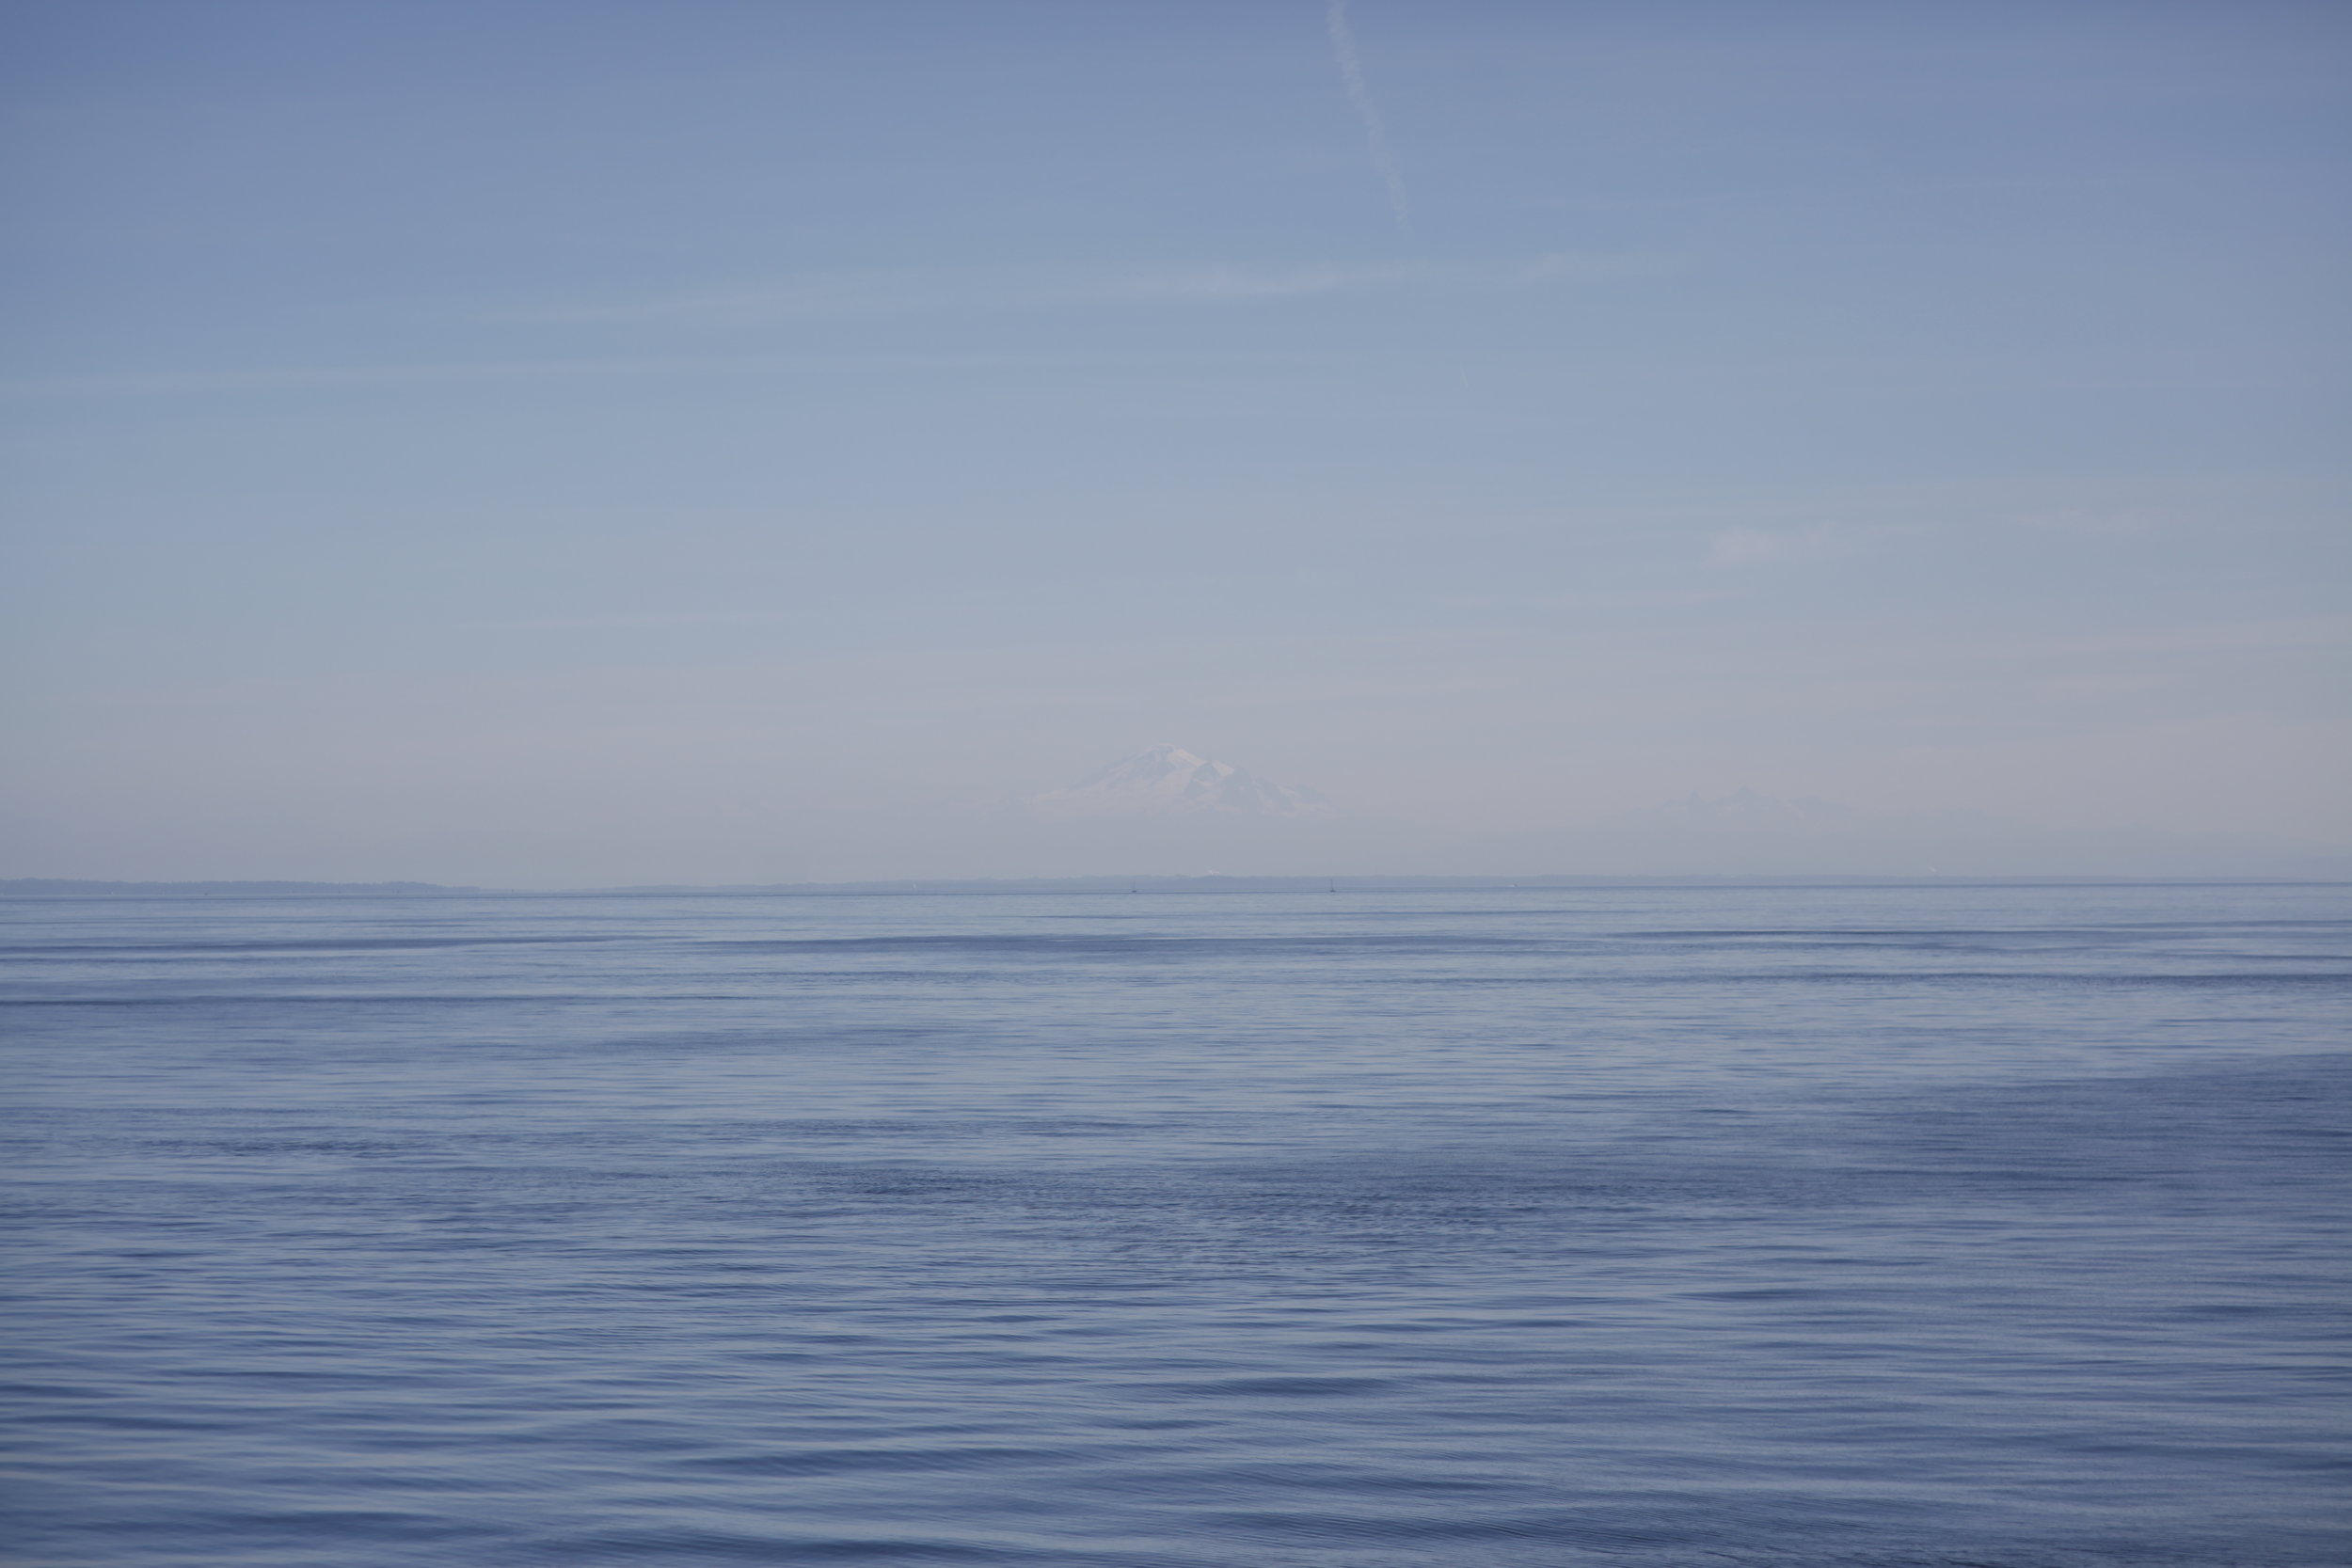 Mt. Baker, BC, Canada (view from somewhere near the Gulf Islands) 2014